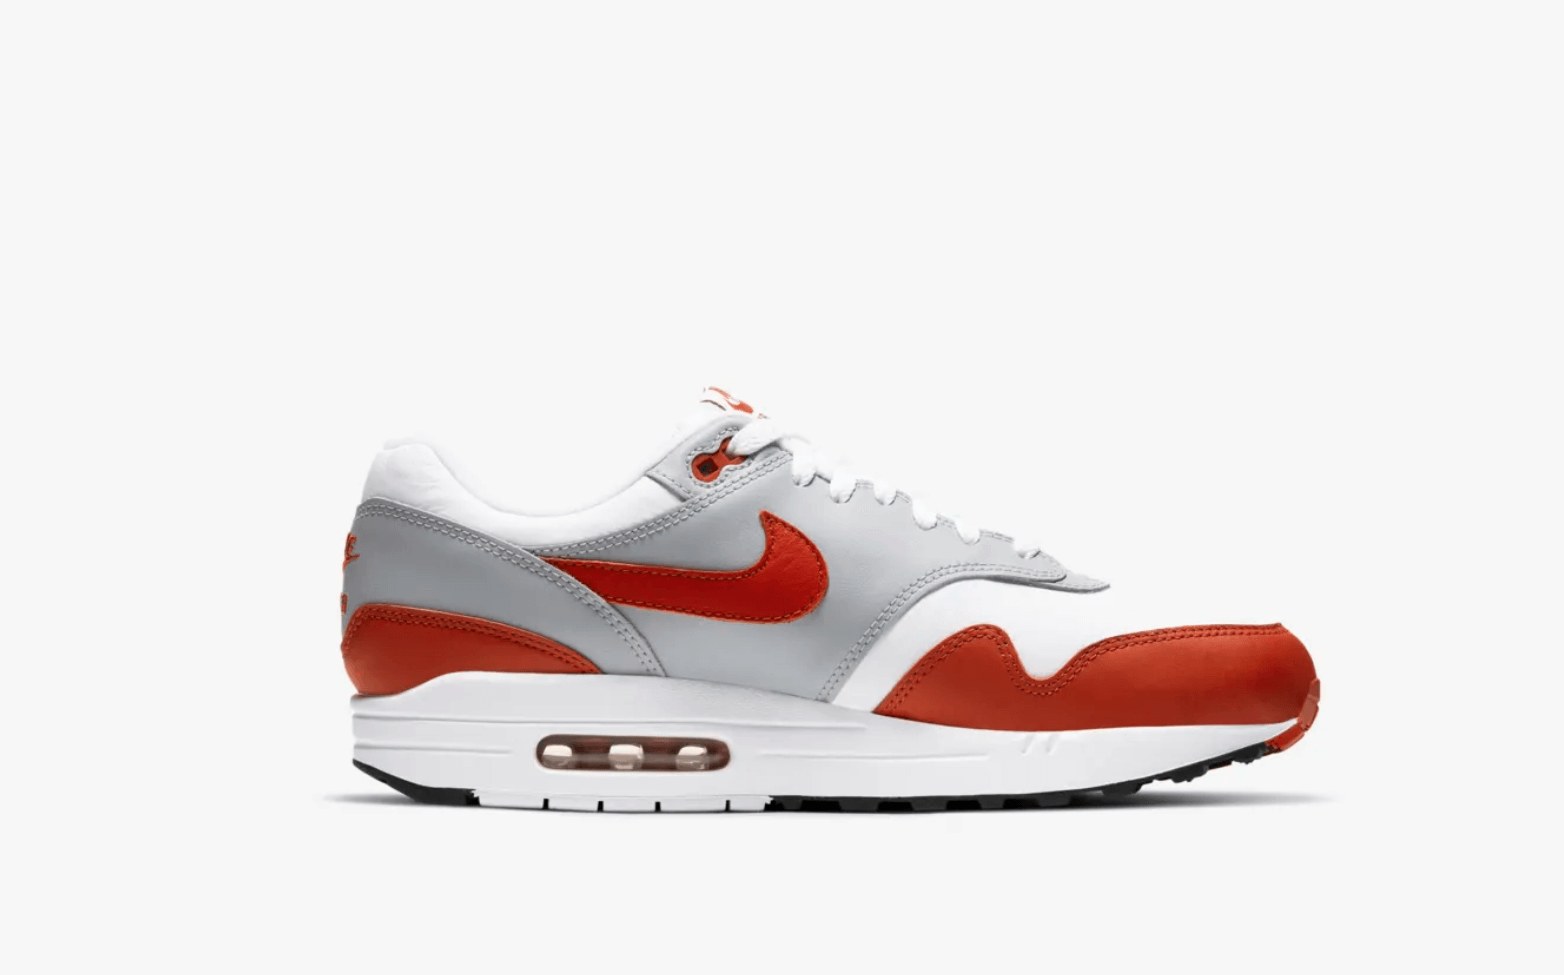 zapatillas Air Max 1 LV8 Martin Sunrise 2021